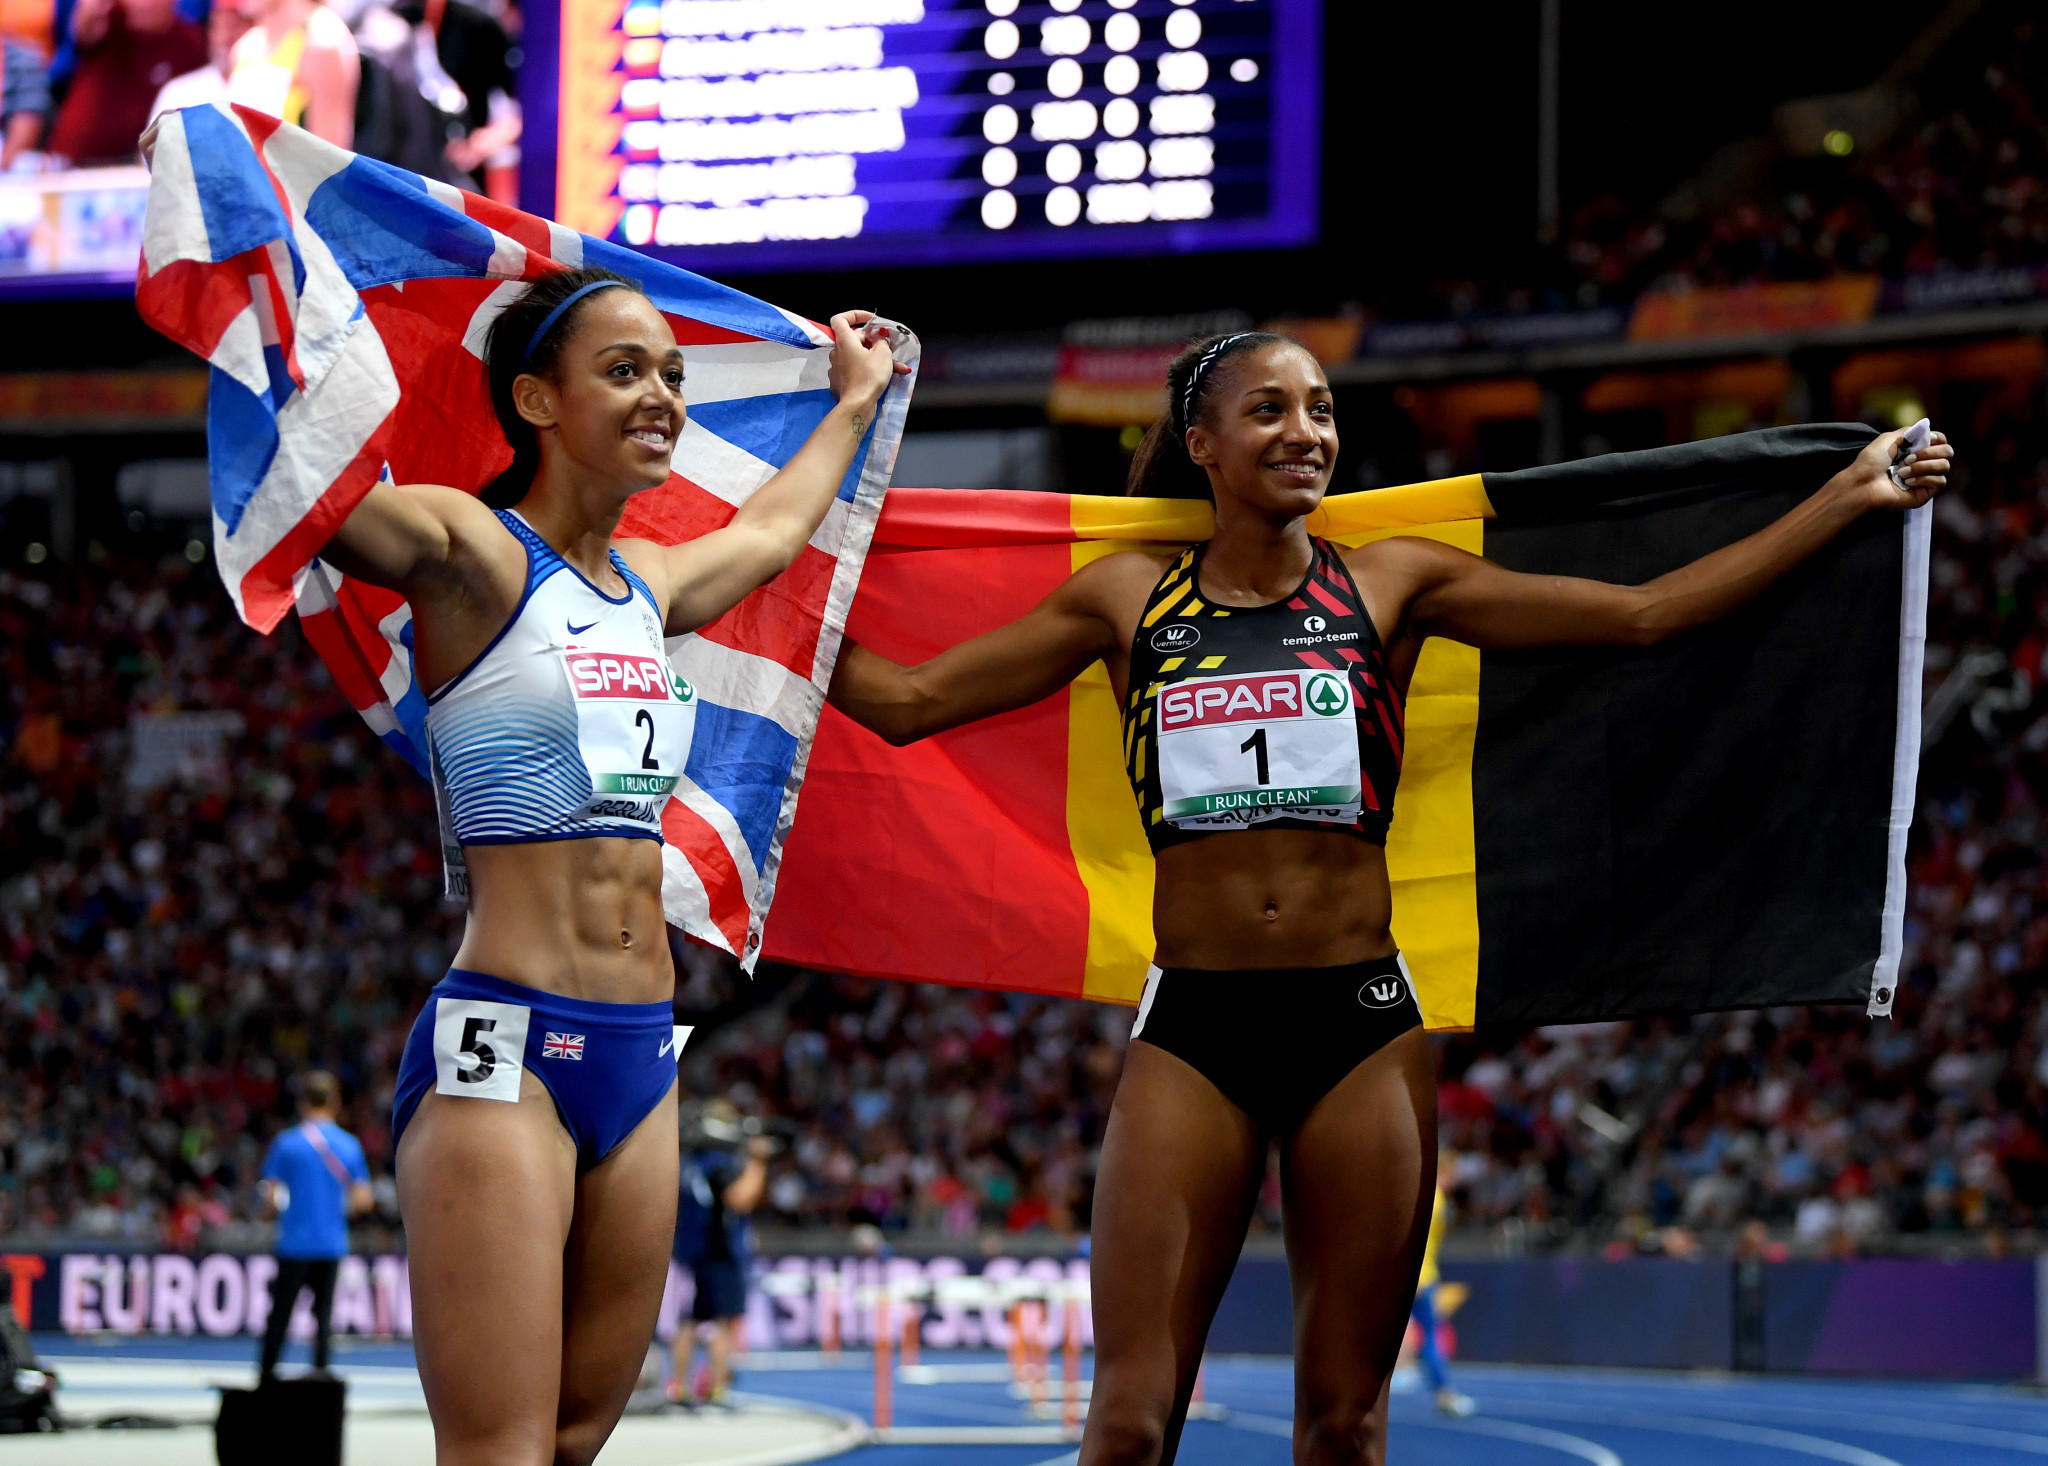 Berlin and Glasgow 2018 European Championships: Day nine of competition